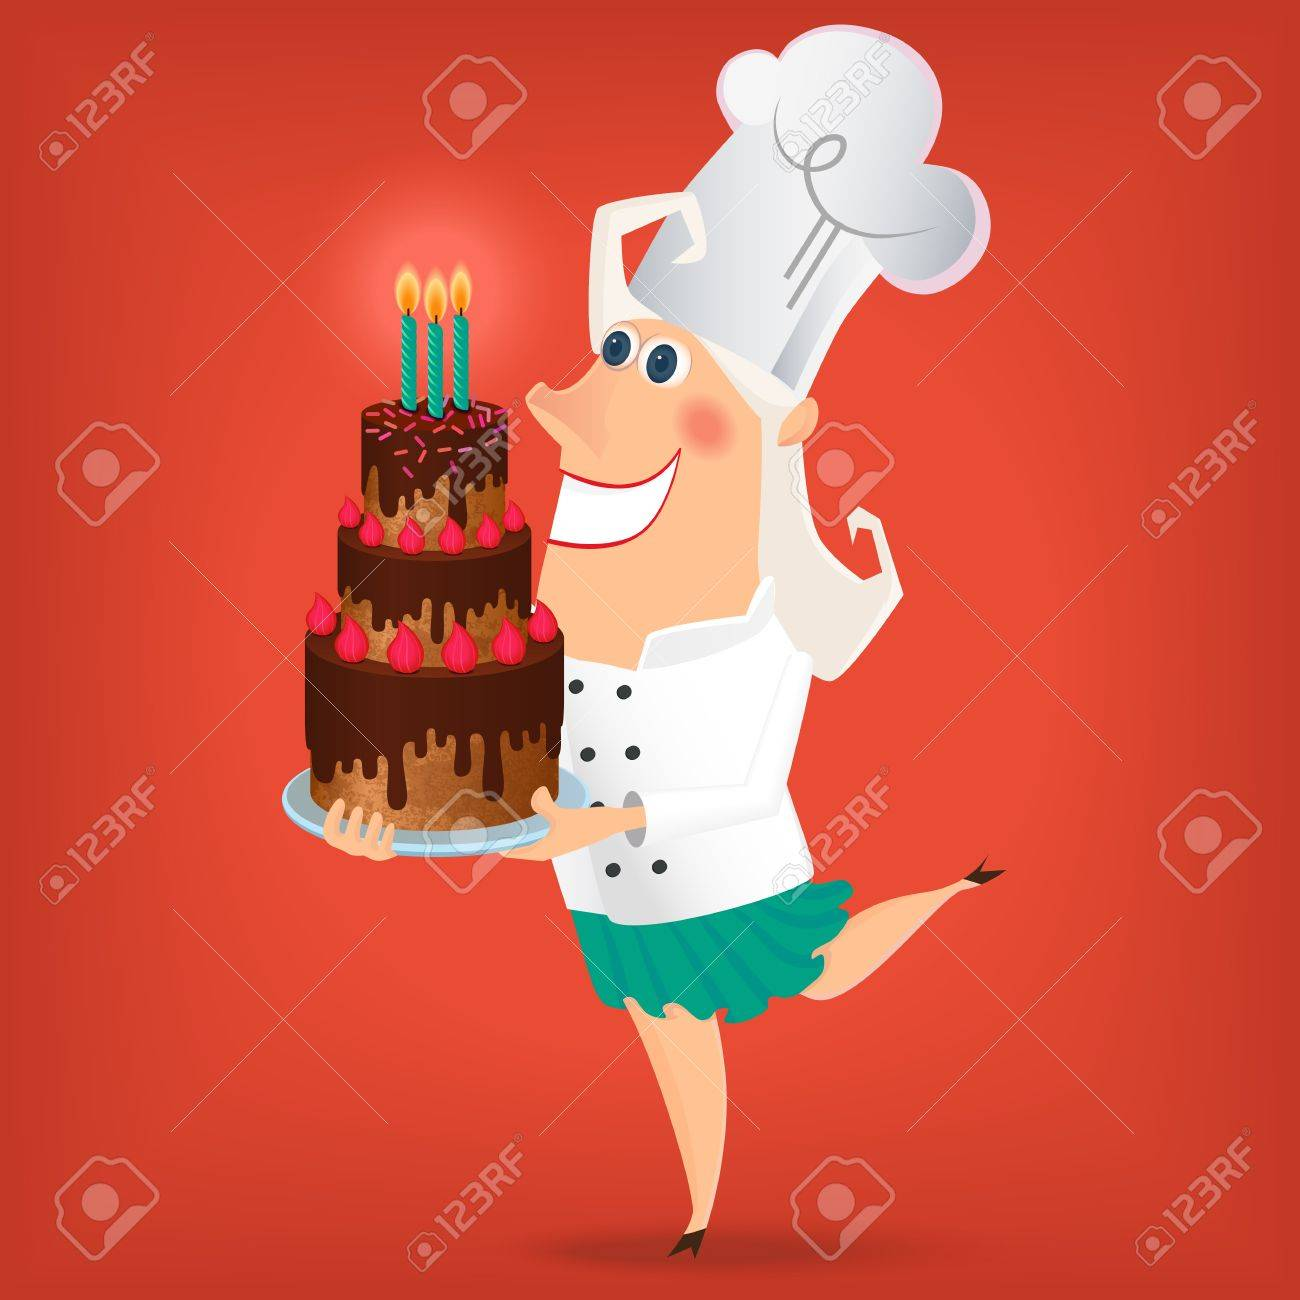 Outstanding Cartoon Lady Chef Holding A Plate With Very Big Birthday Cake Birthday Cards Printable Benkemecafe Filternl